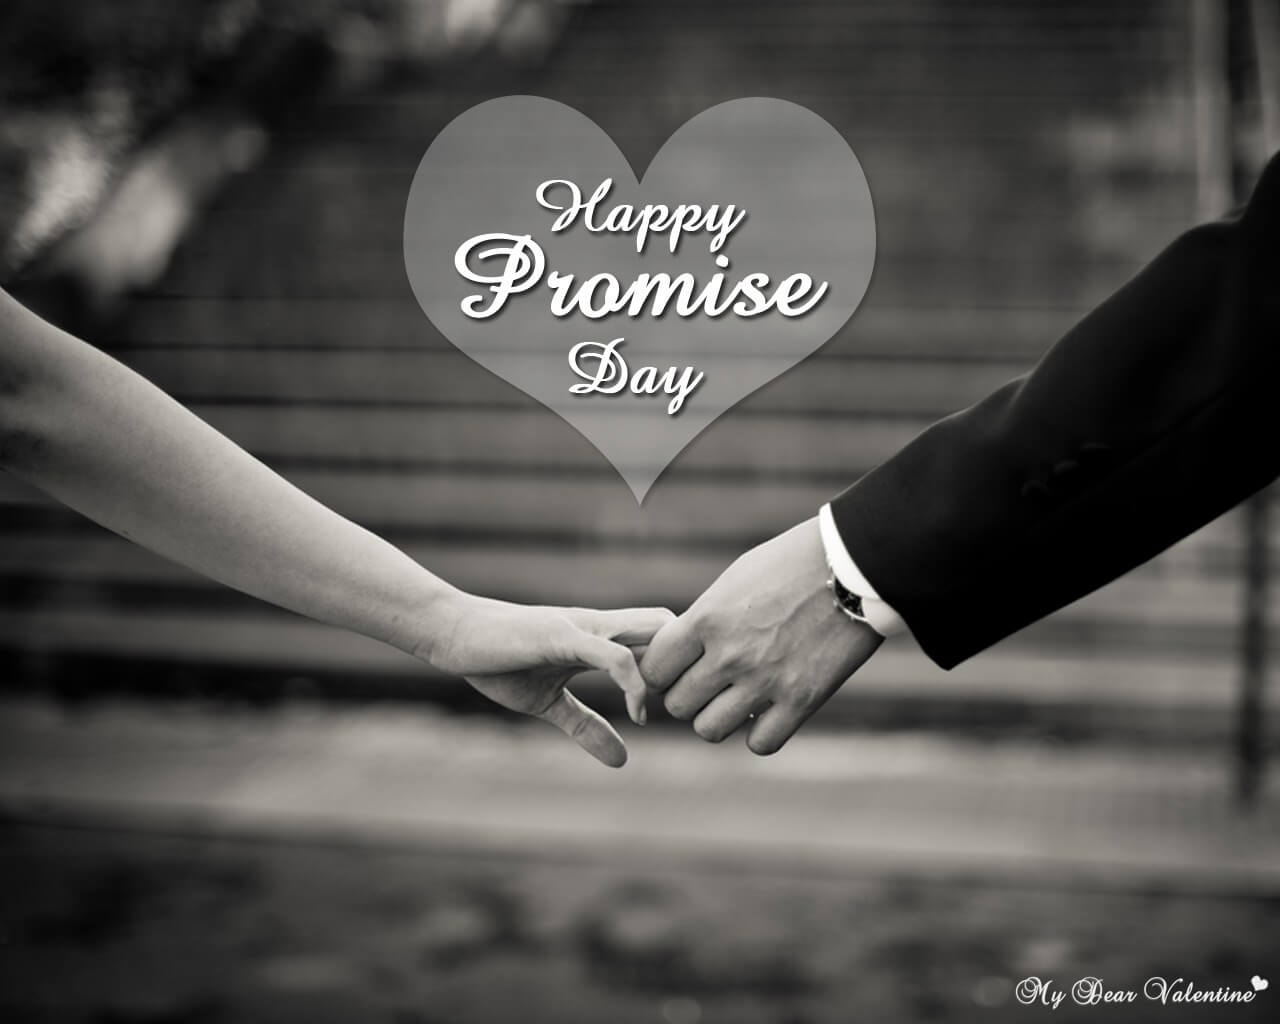 happy promise day wishes love valentine february 11th picture hd wallpaper